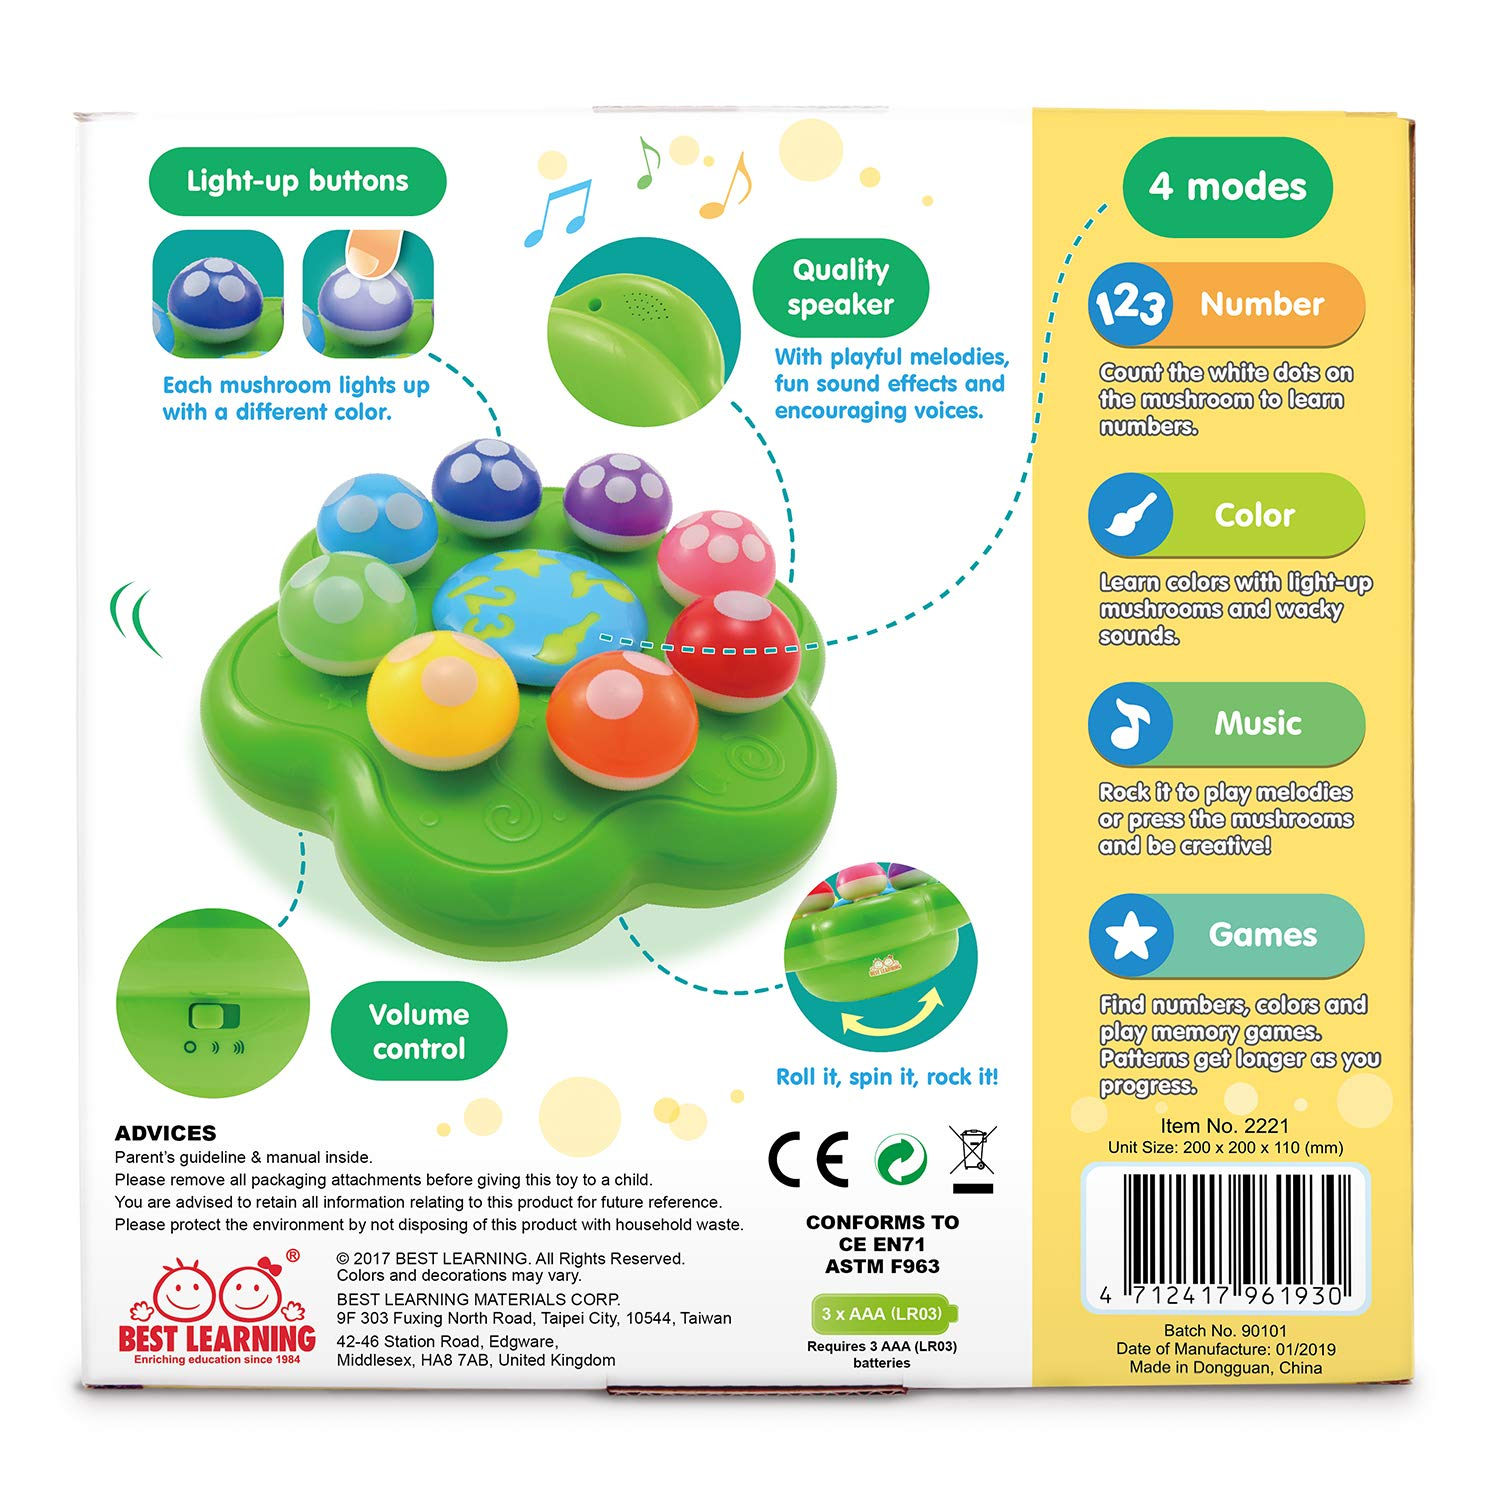 BEST LEARNING Mushroom Garden - Interactive Educational Light-Up Toddler Toys for 1 to 3 Years Old Infants & Toddlers - Colors, Numbers, Games & Music for Kids by BEST LEARNING (Image #9)